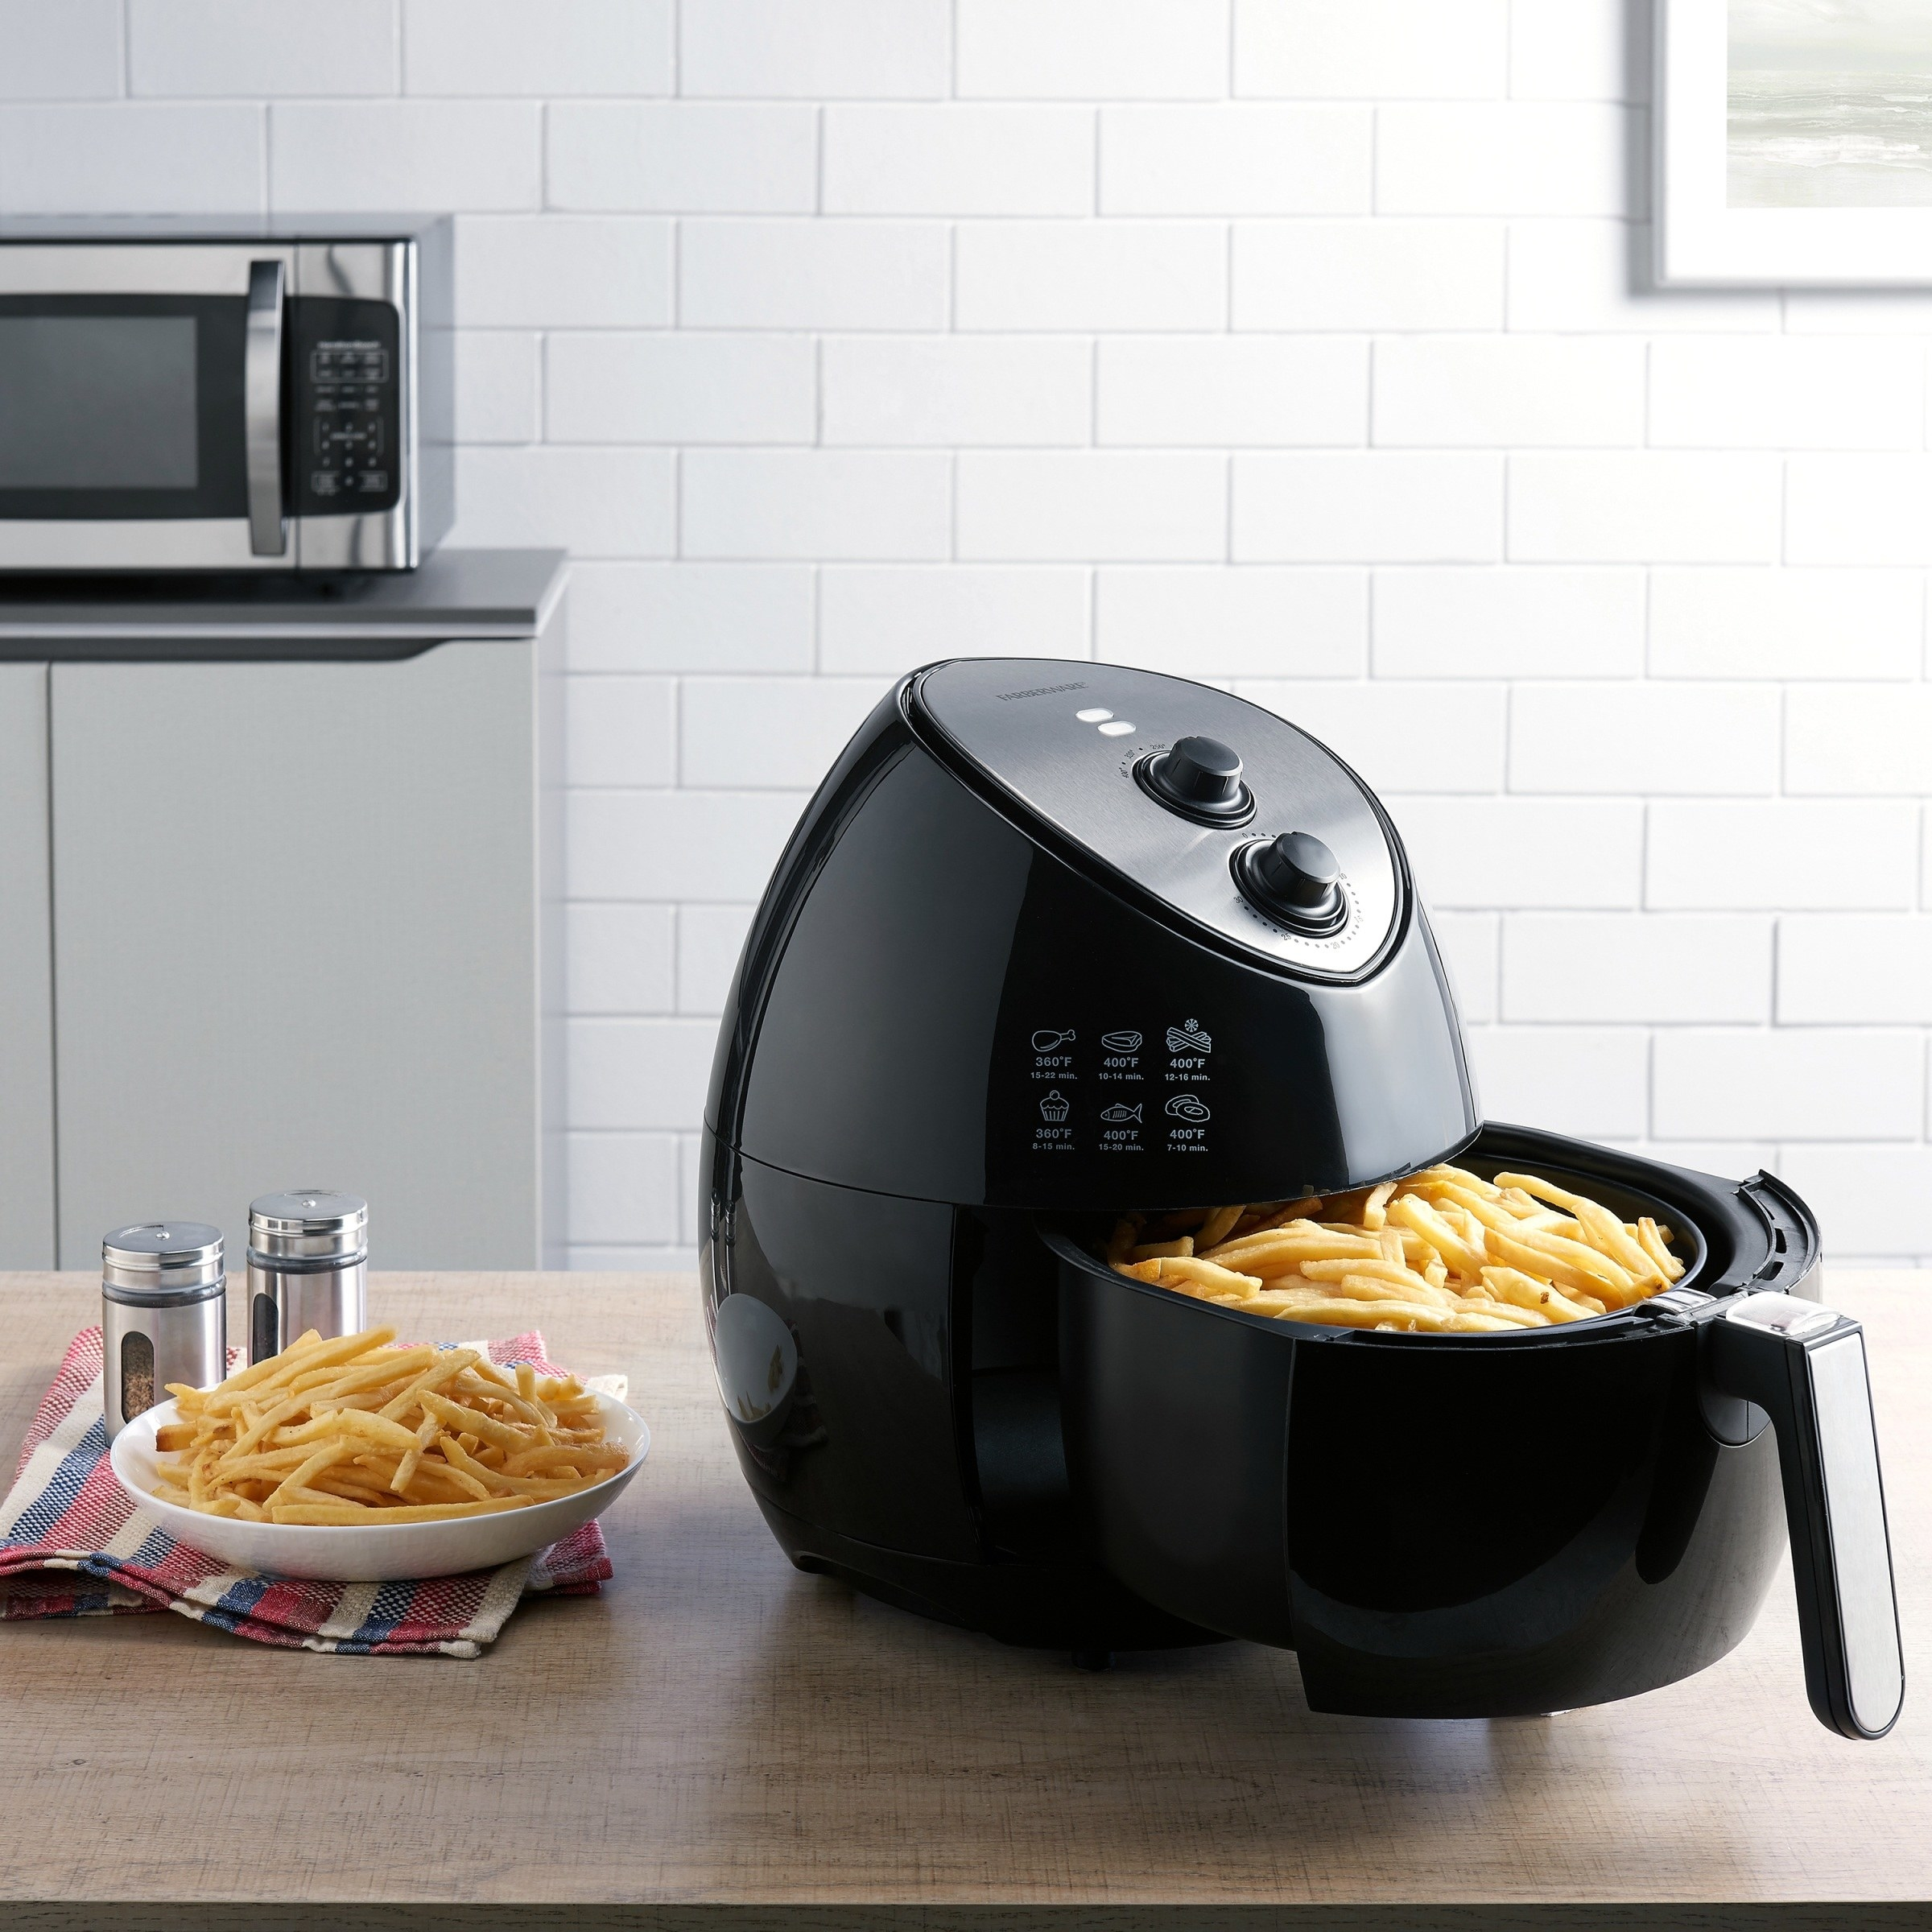 The air fryer in a kitchen, full of french fries